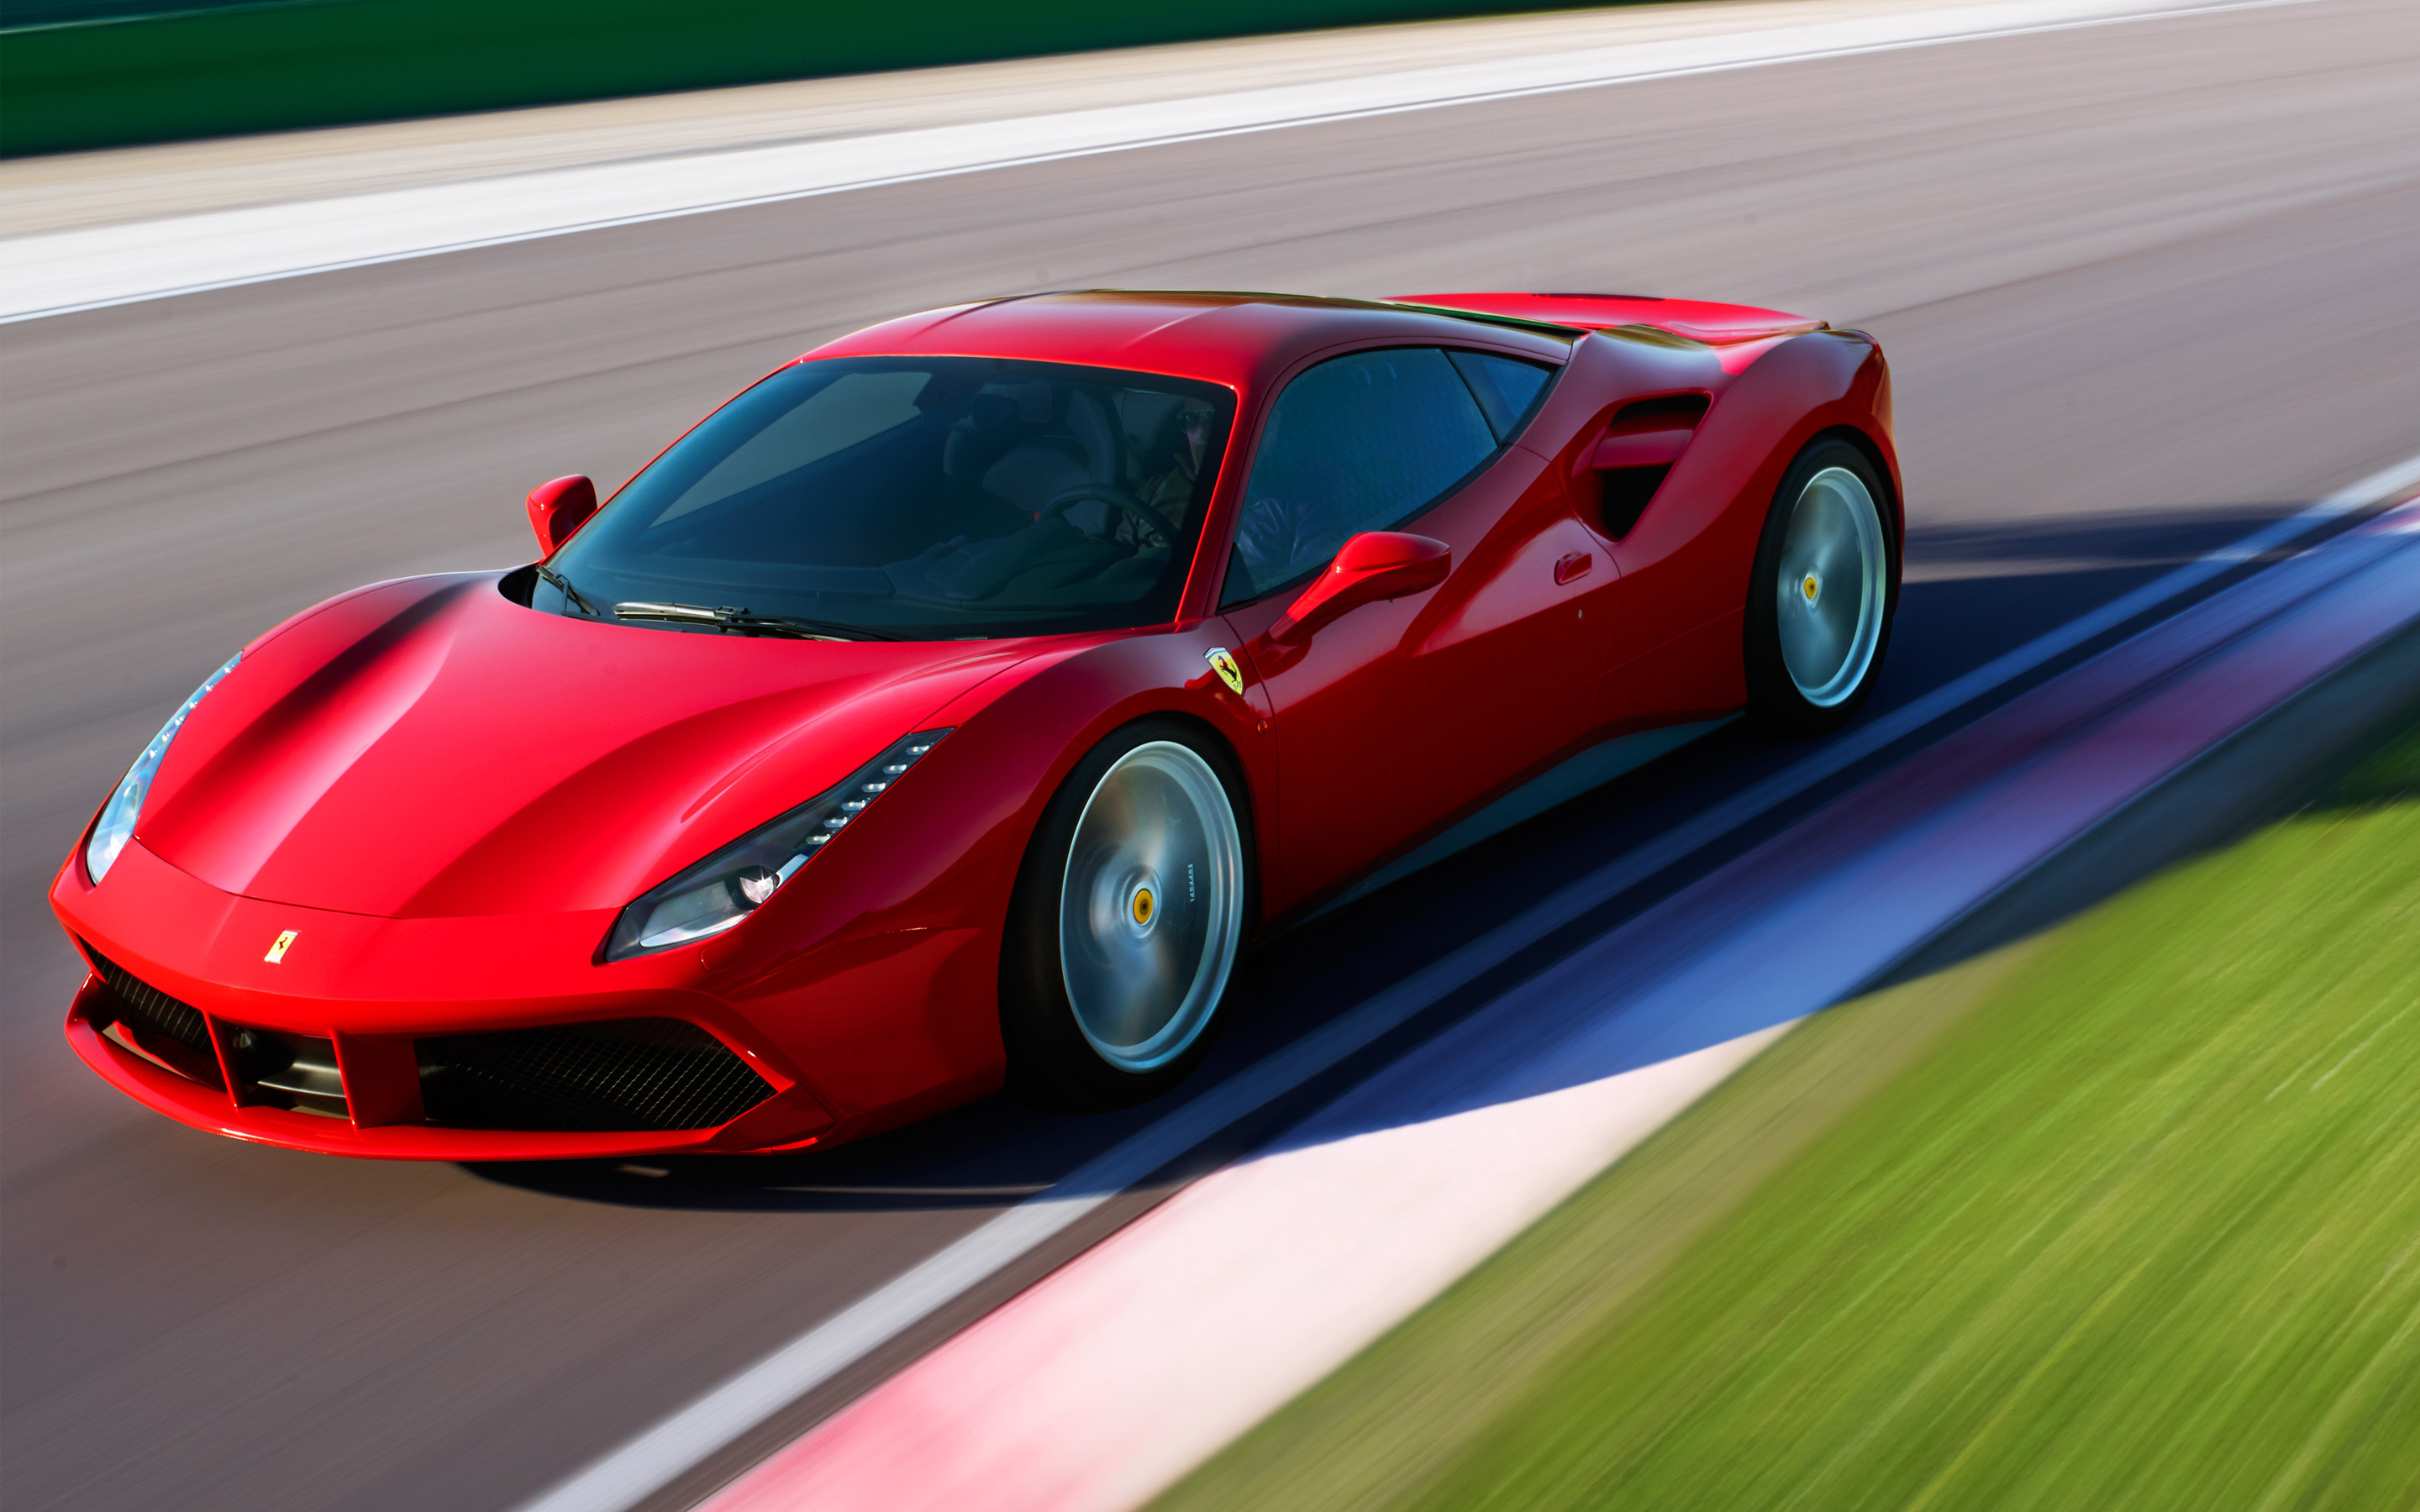 Ferrari 488 Gtb Hd Supercars Gallery